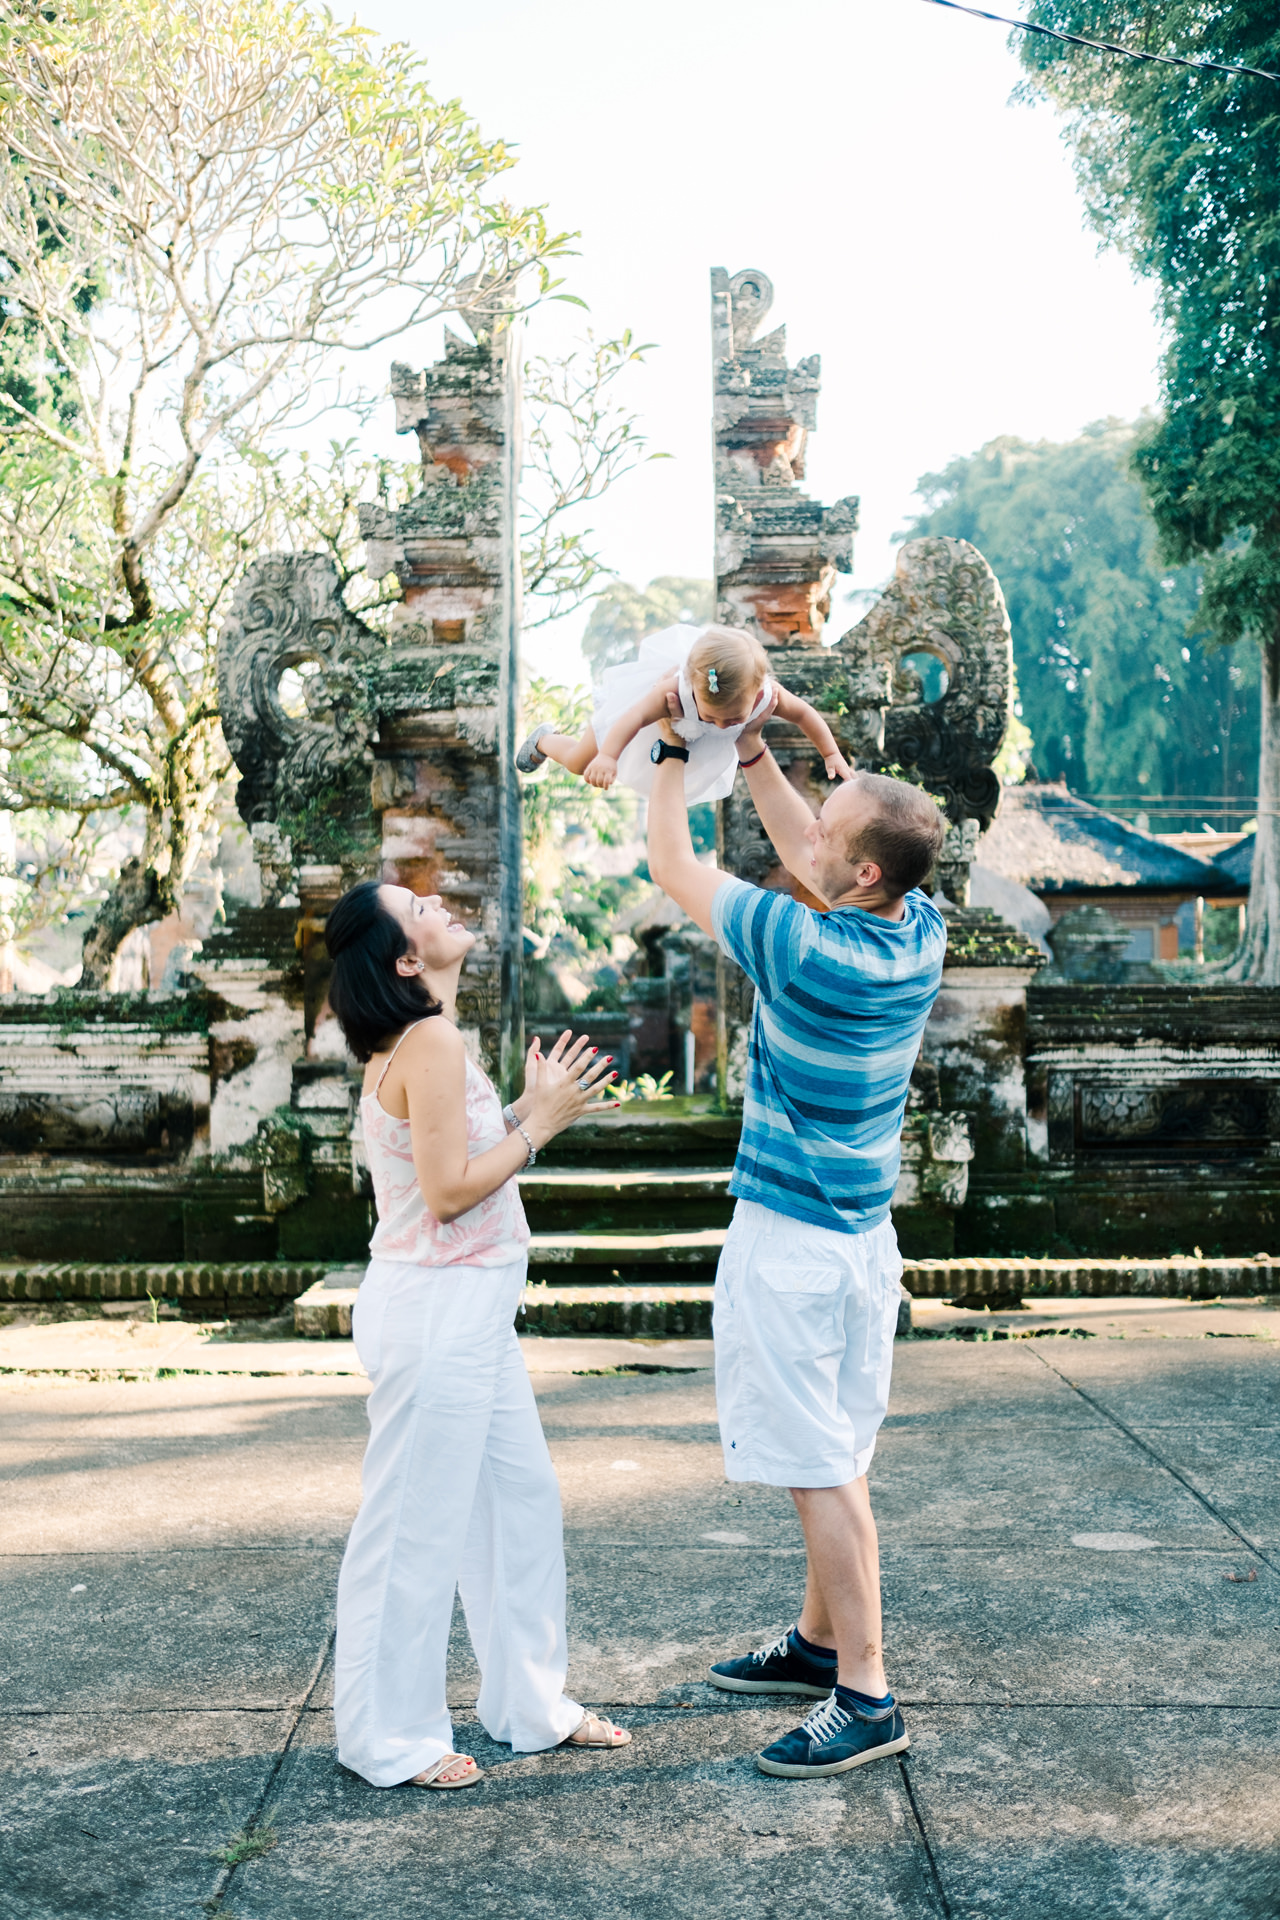 Bali Holiday Family Photo Session 3